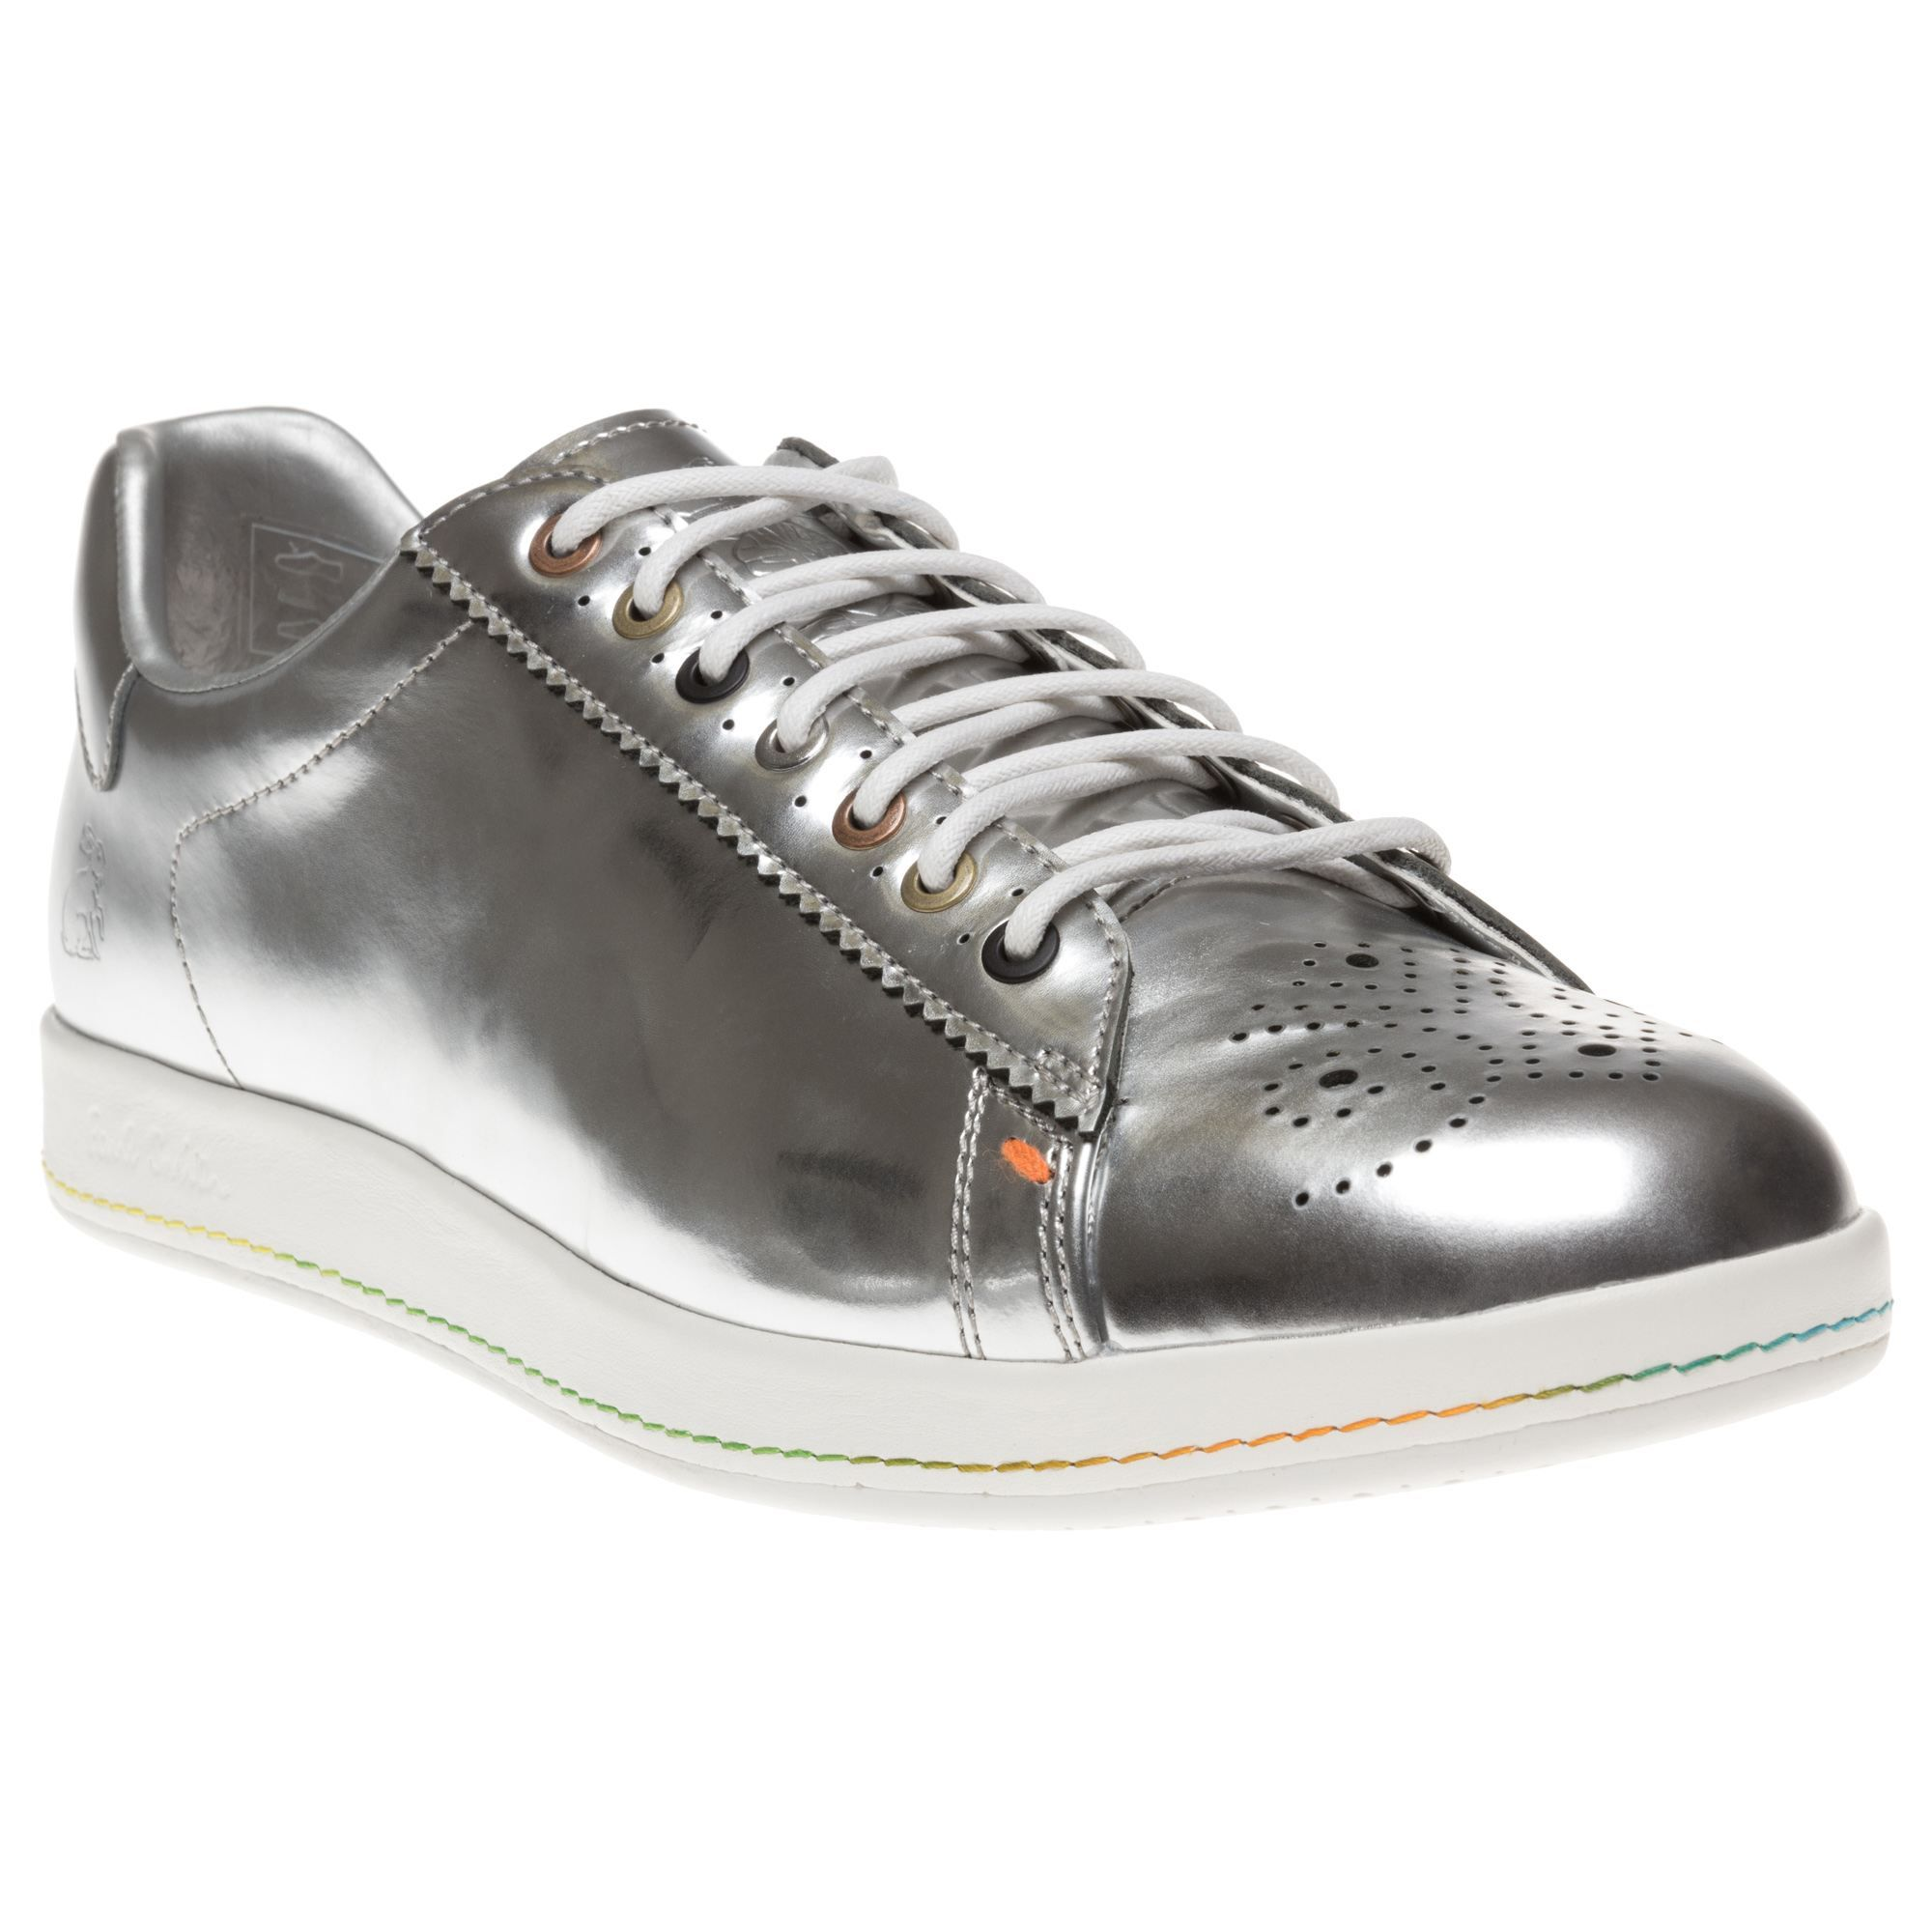 b8148a840d18 Paul Smith Shoe Rabbit Trainers - Women - SOLETRADER OUTLET ...